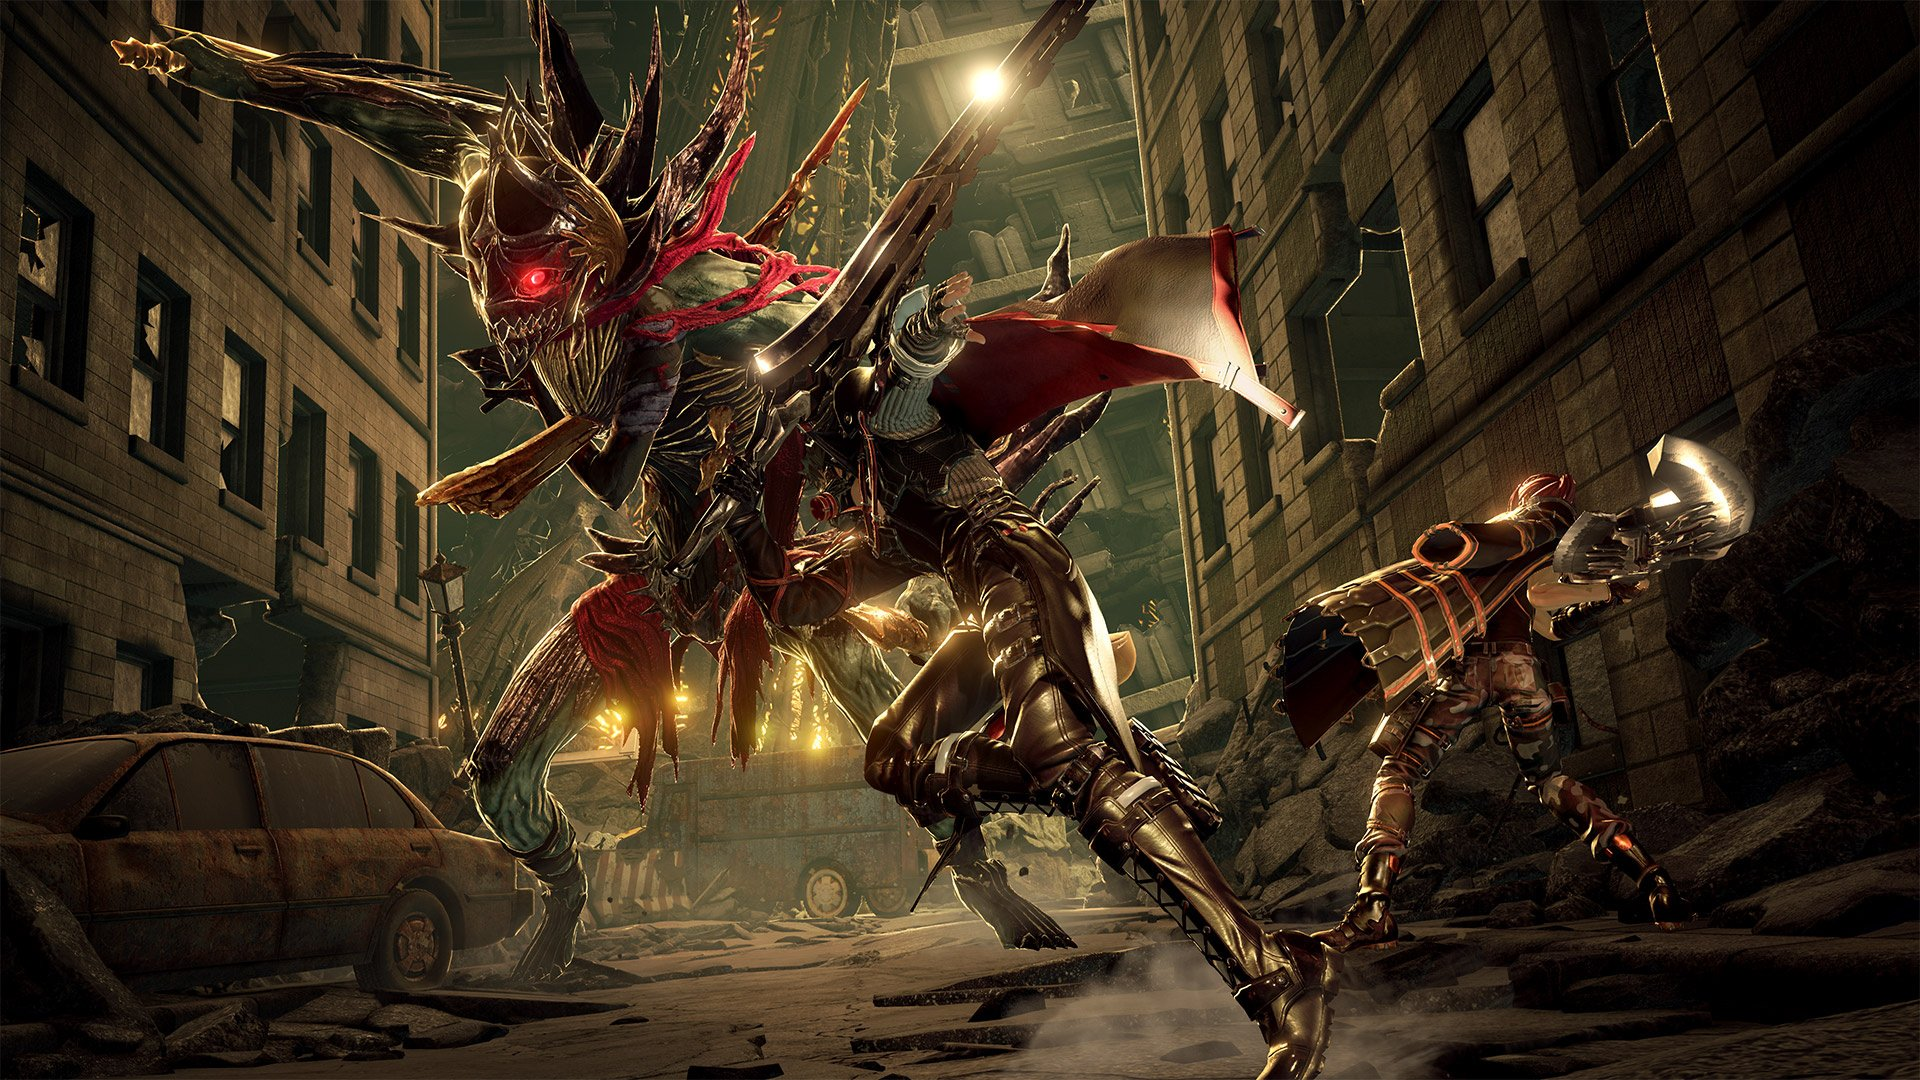 Code Vein network test slated for May - here's 50 minutes of gameplay